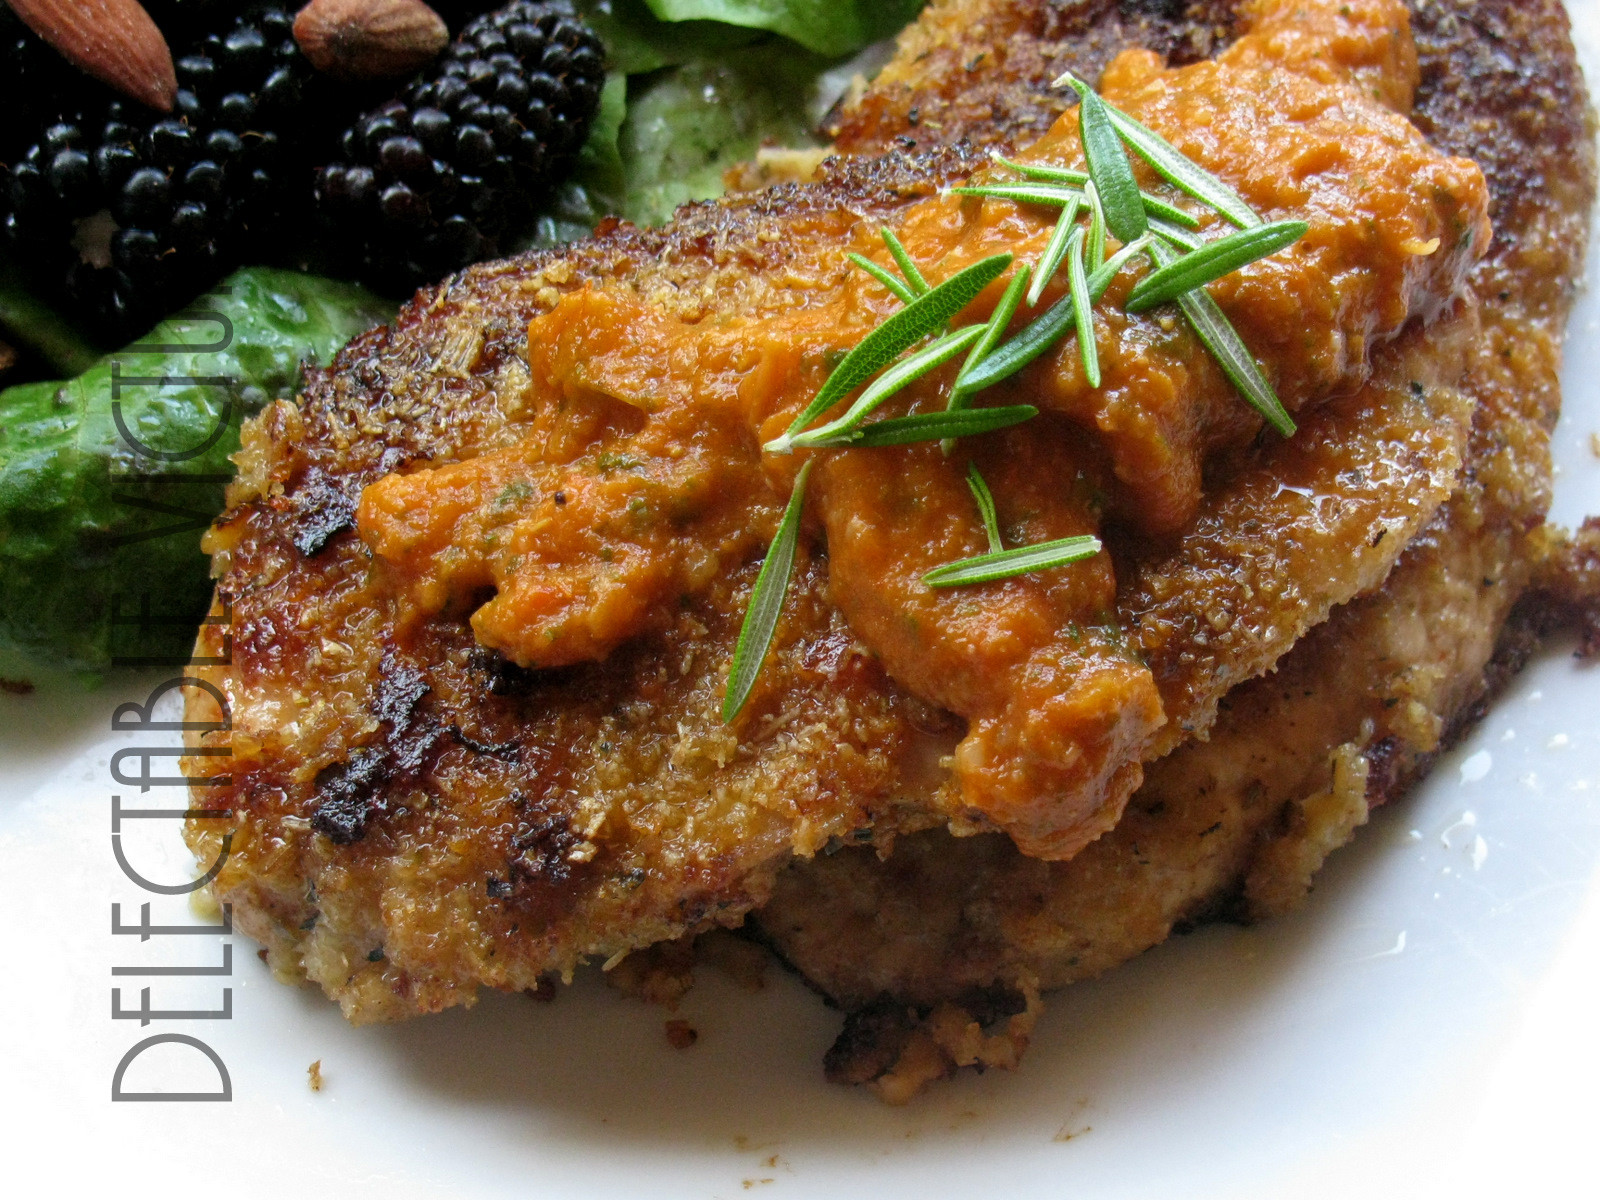 Breaded Fried Chicken  Delectable Victuals Easy Breaded Pan fried Chicken Breasts